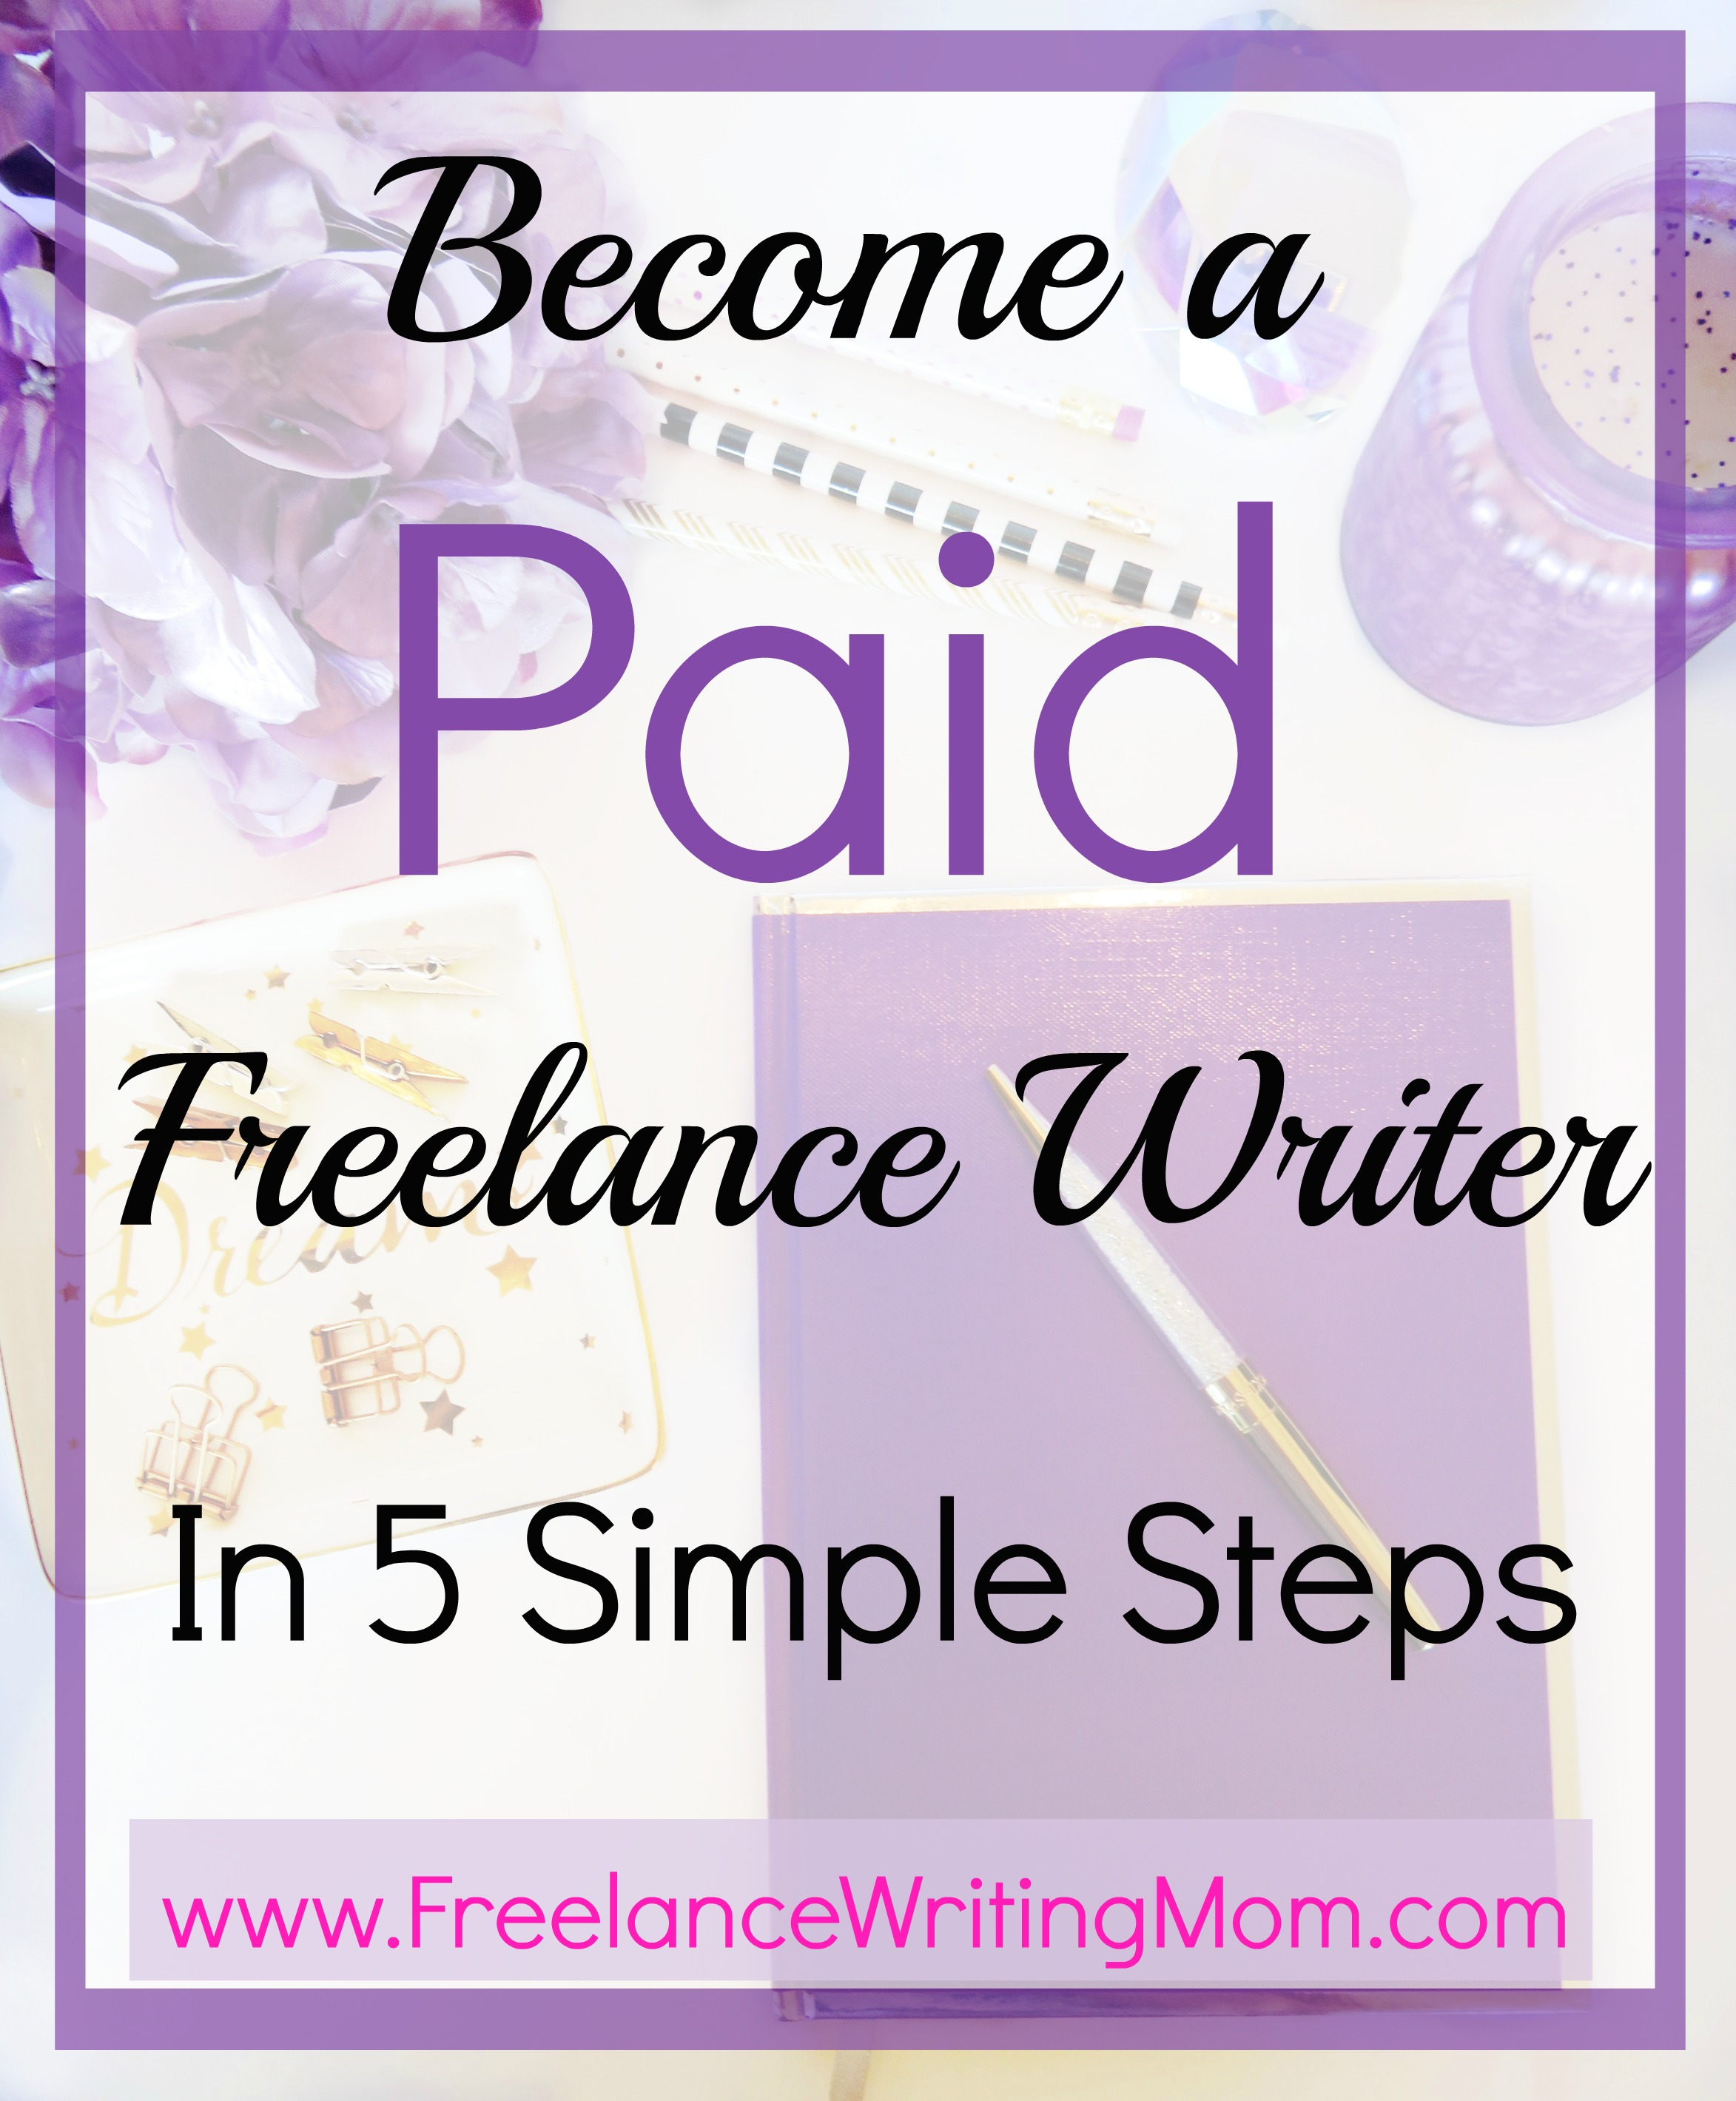 simple steps to getting paid as a lance writer lance 5 simple steps to getting paid as a lance writer 8902 lance writing mom